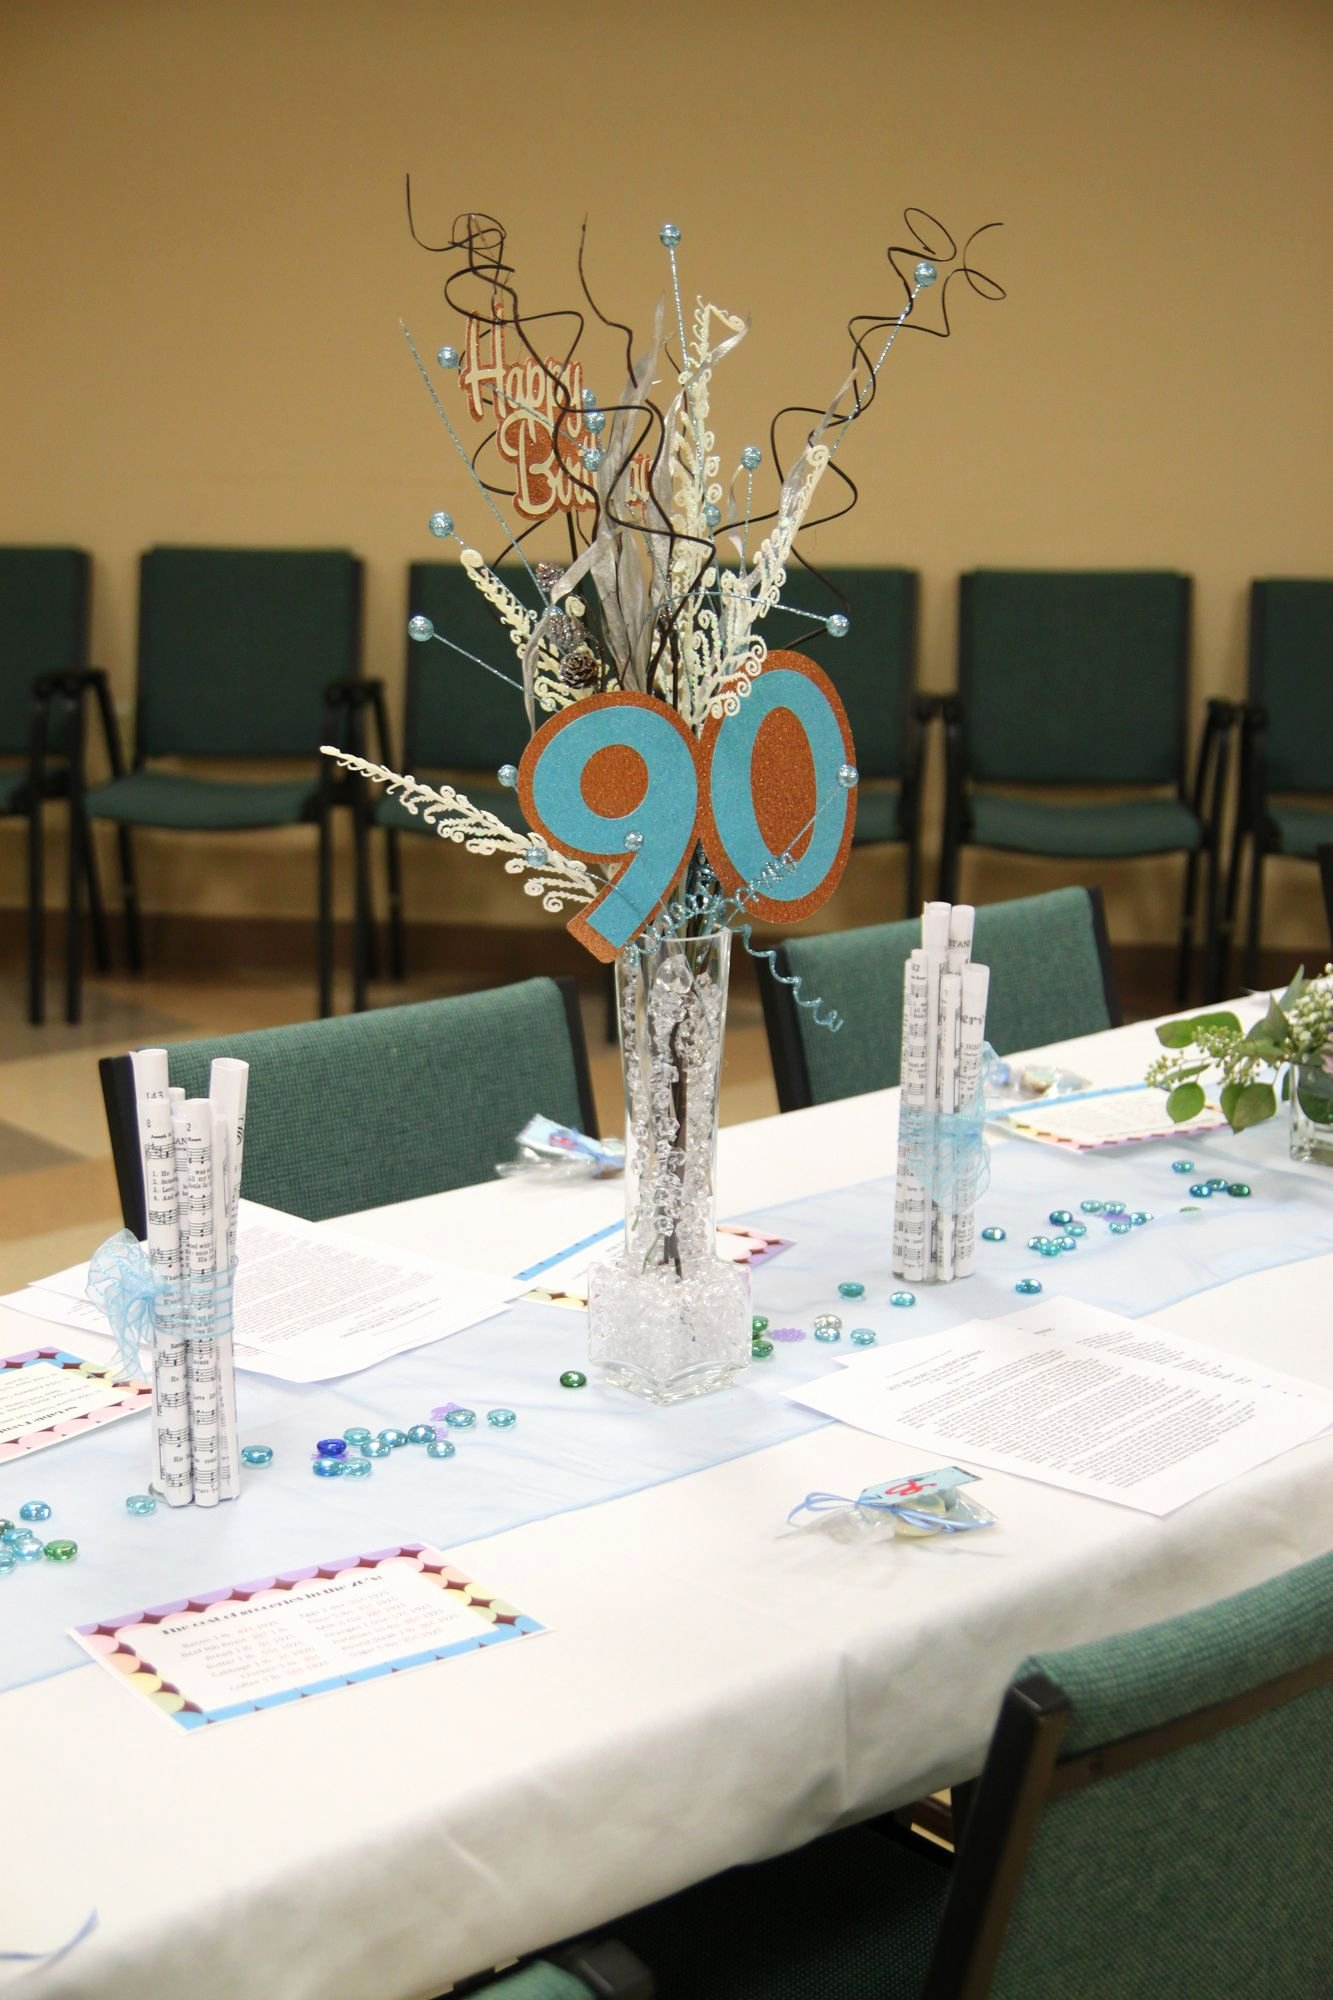 Birthday Decoration Ideas for Table Inspirational Centerpieces for Mom S 90th Birthday